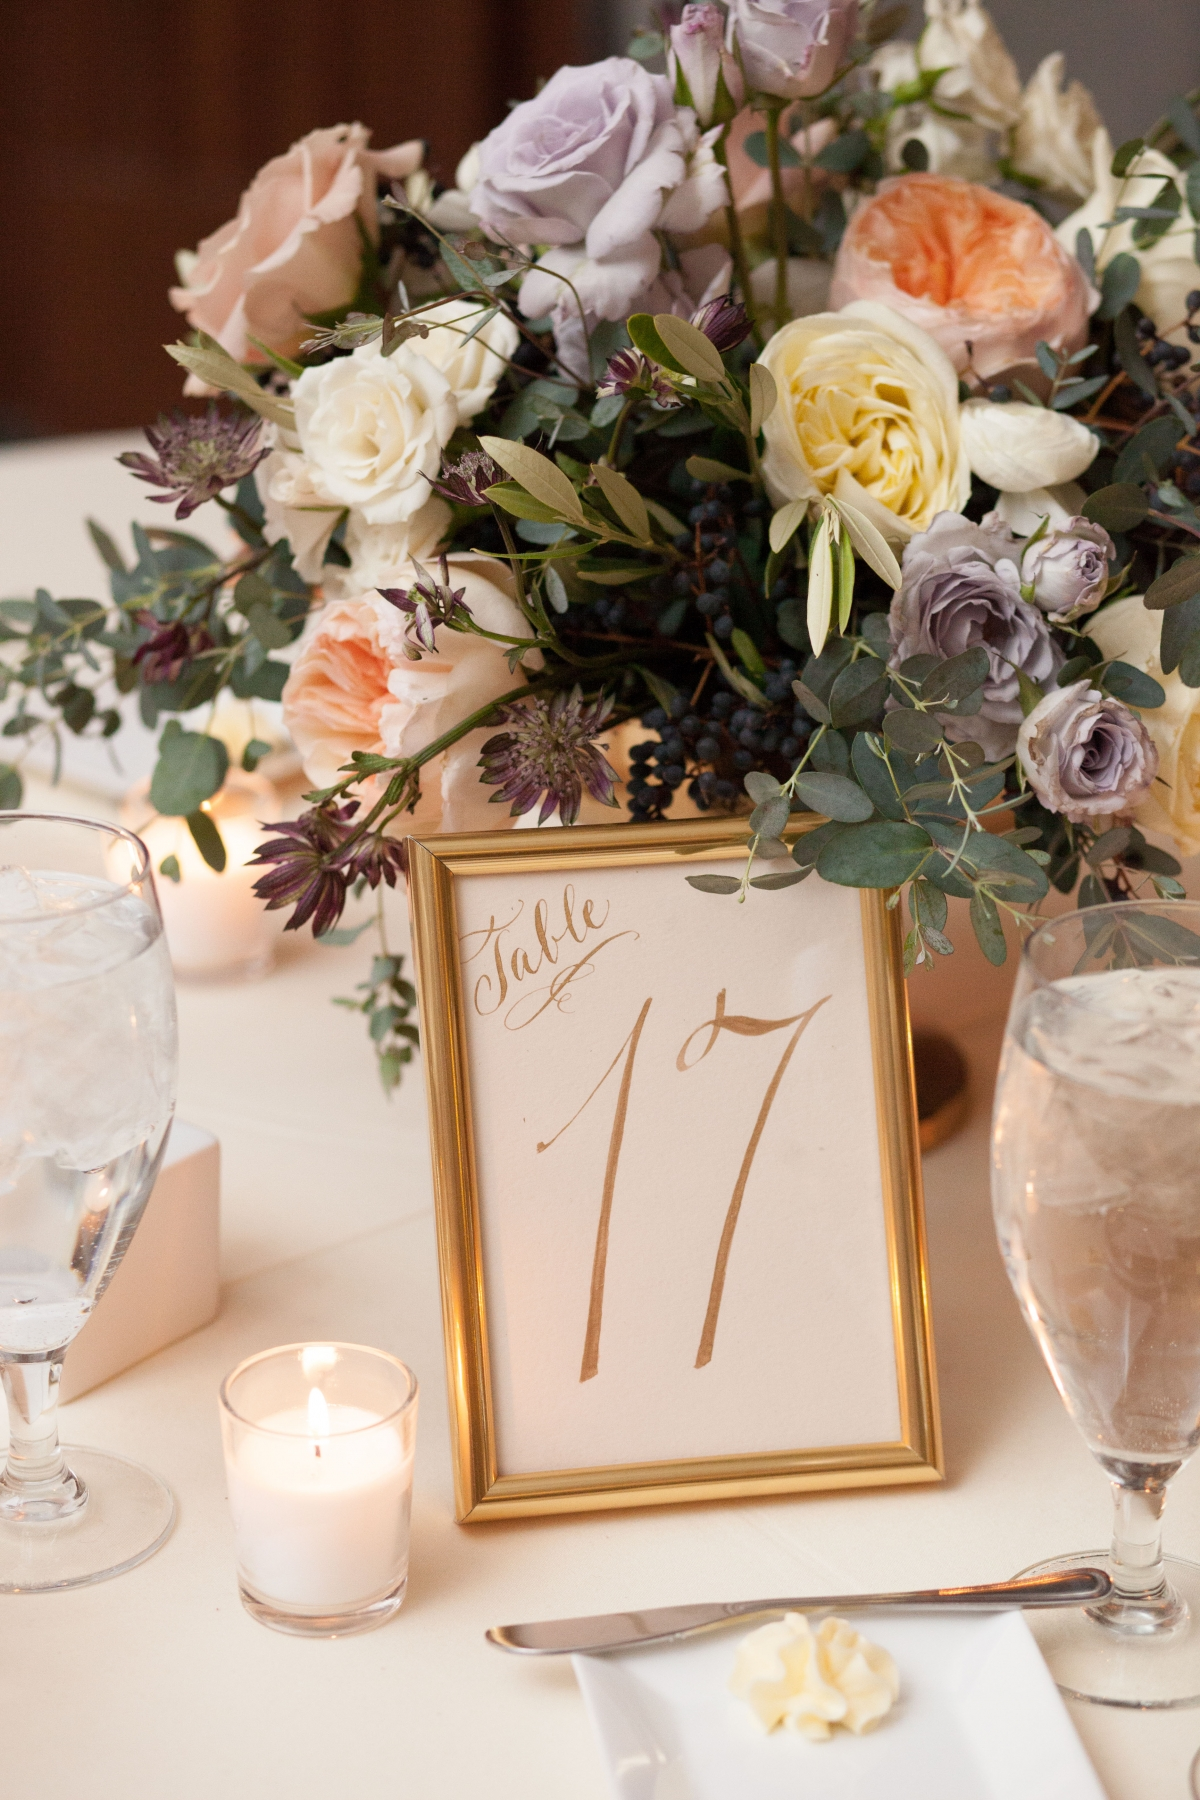 Pastel Centerpiece with Calligraphy Table Number